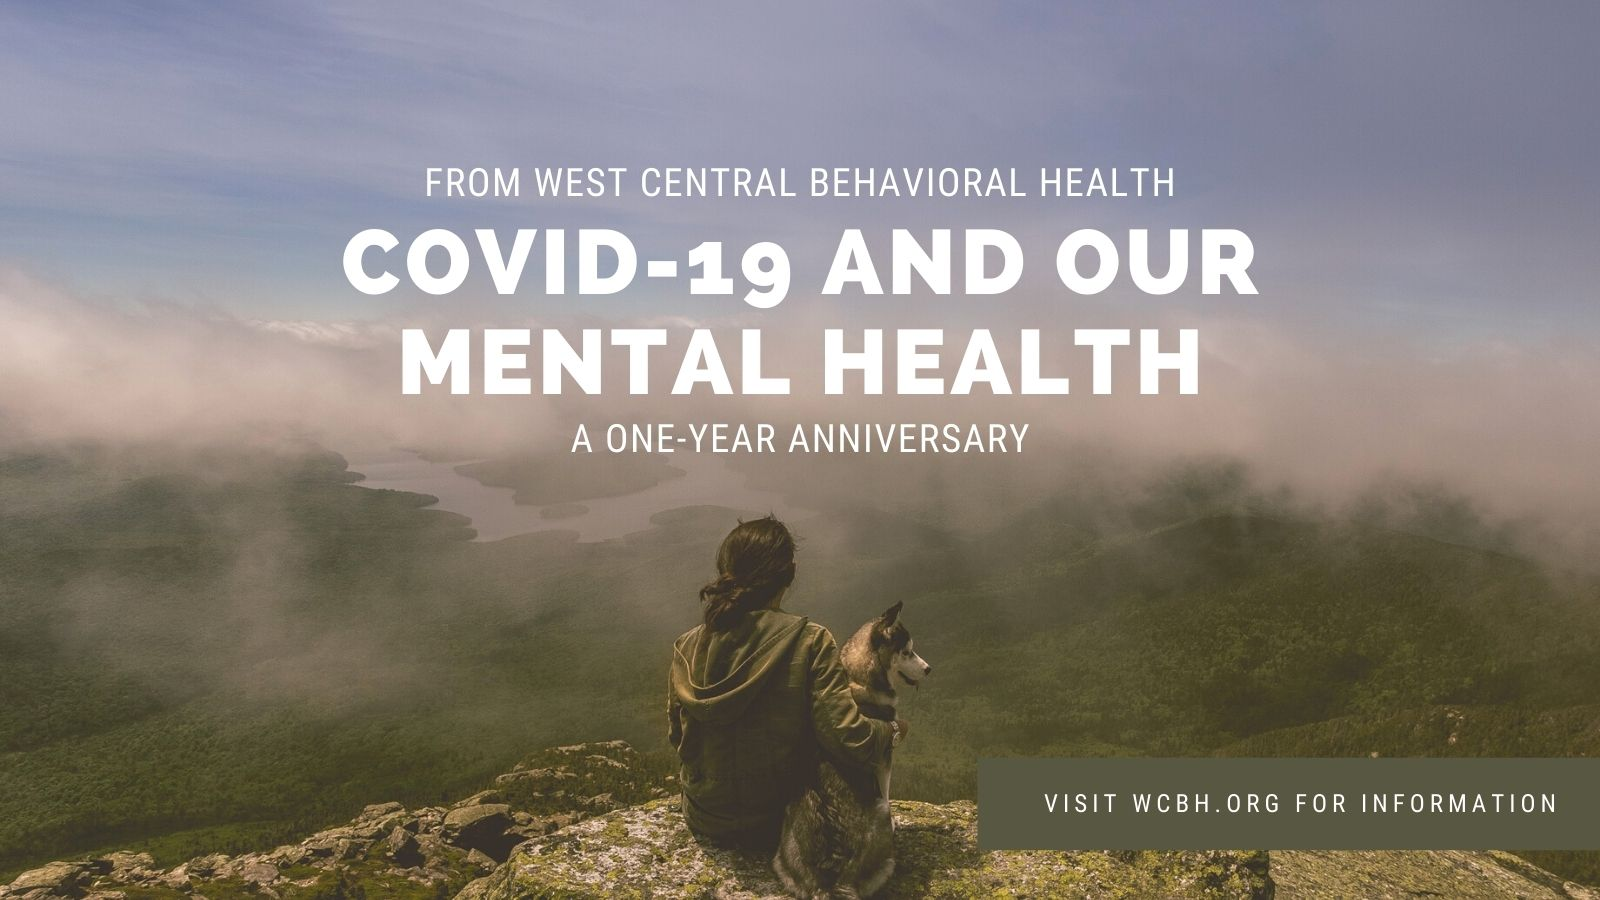 West Central Behavioral Health update